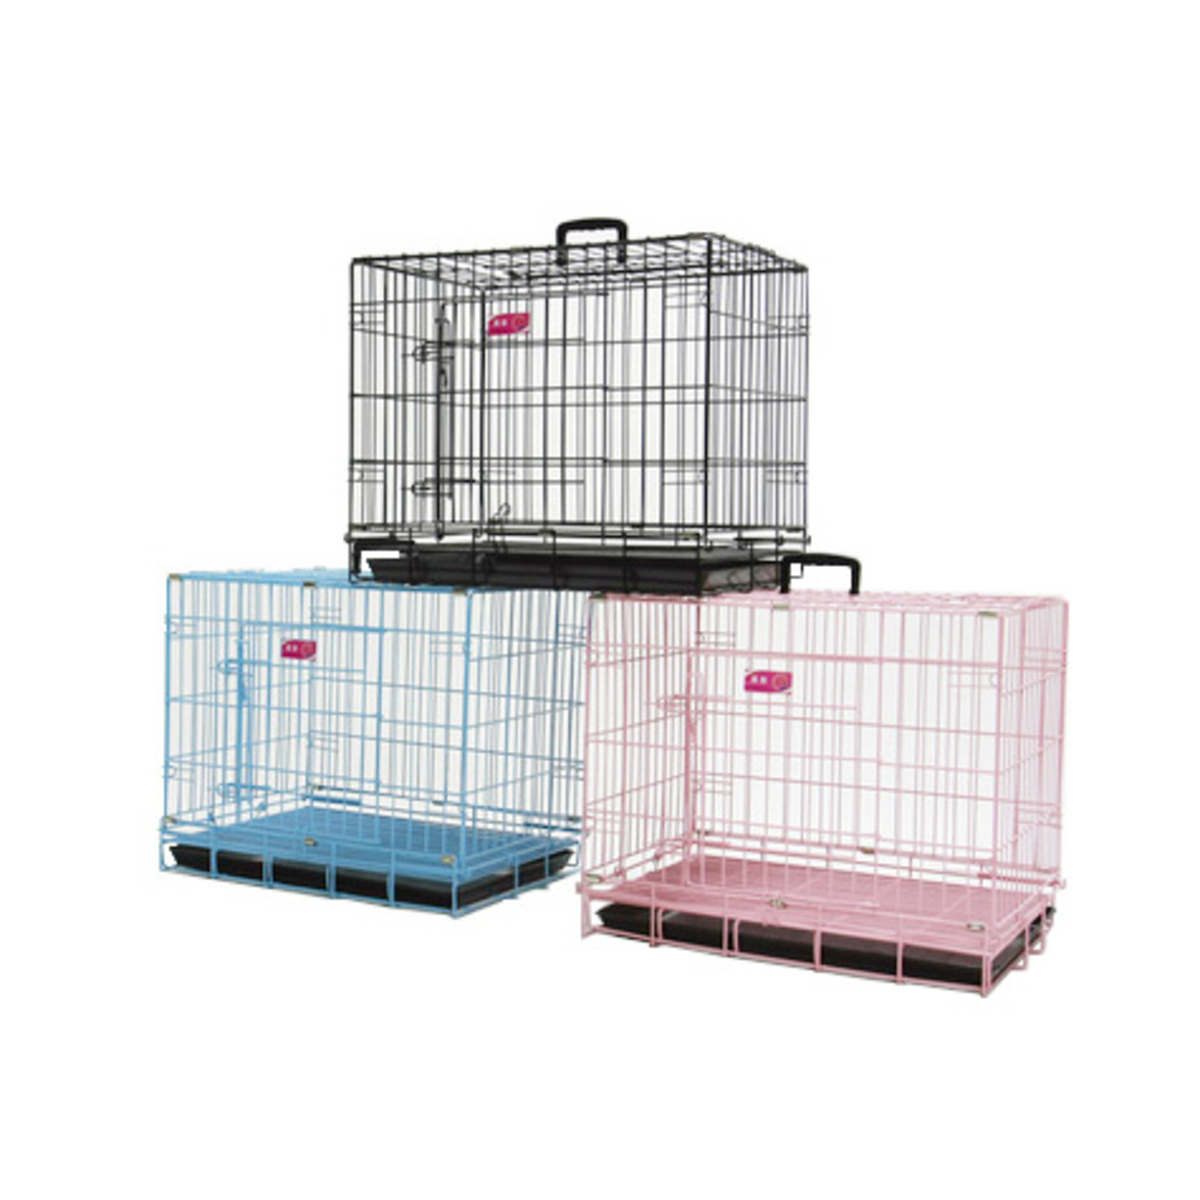 3 Feet Low Carbon Steel Folding Pet Cage - Black